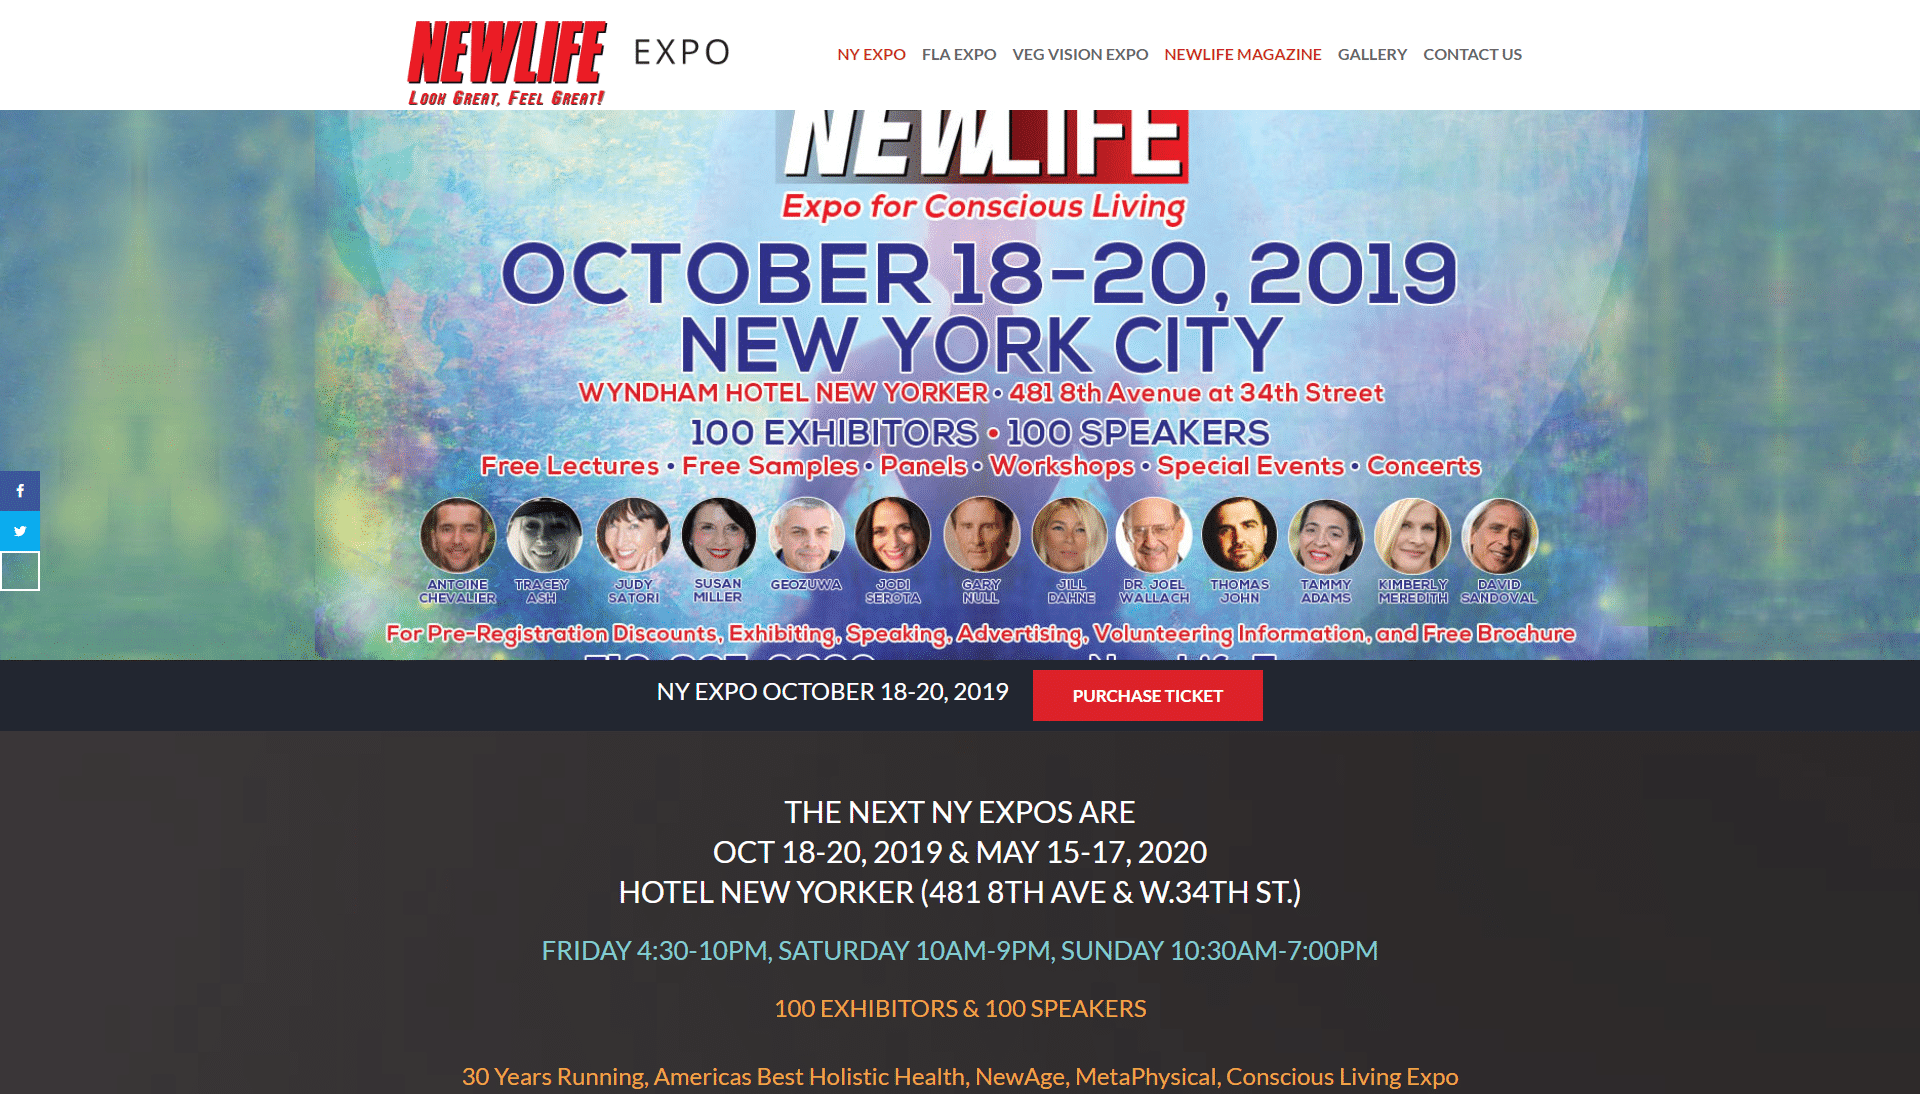 NEWLIFE Expo - website Optimization, SEO WRCKTNGL New York